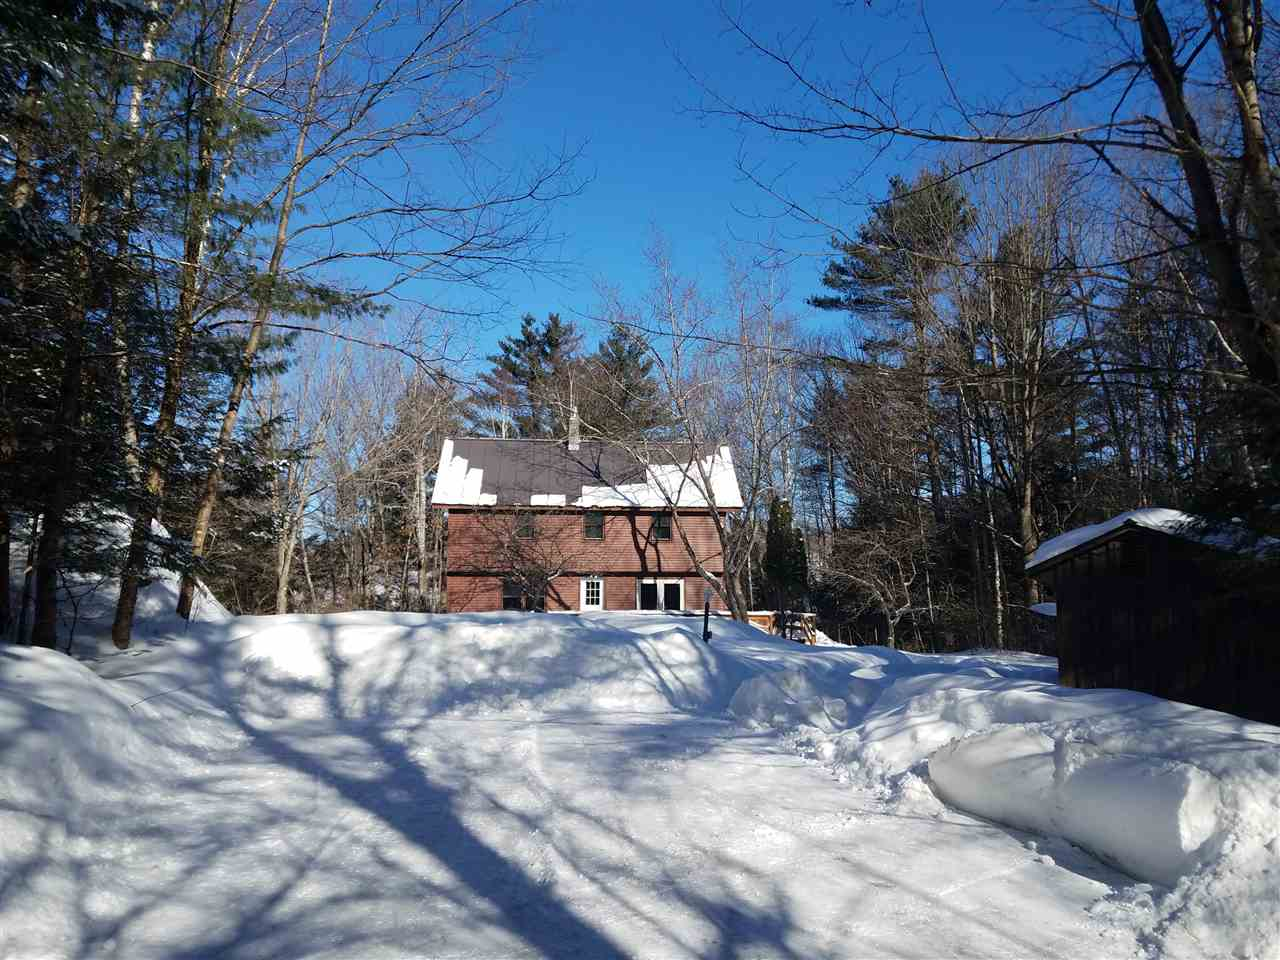 MLS 4736852: 9 Paine Road, Hanover NH